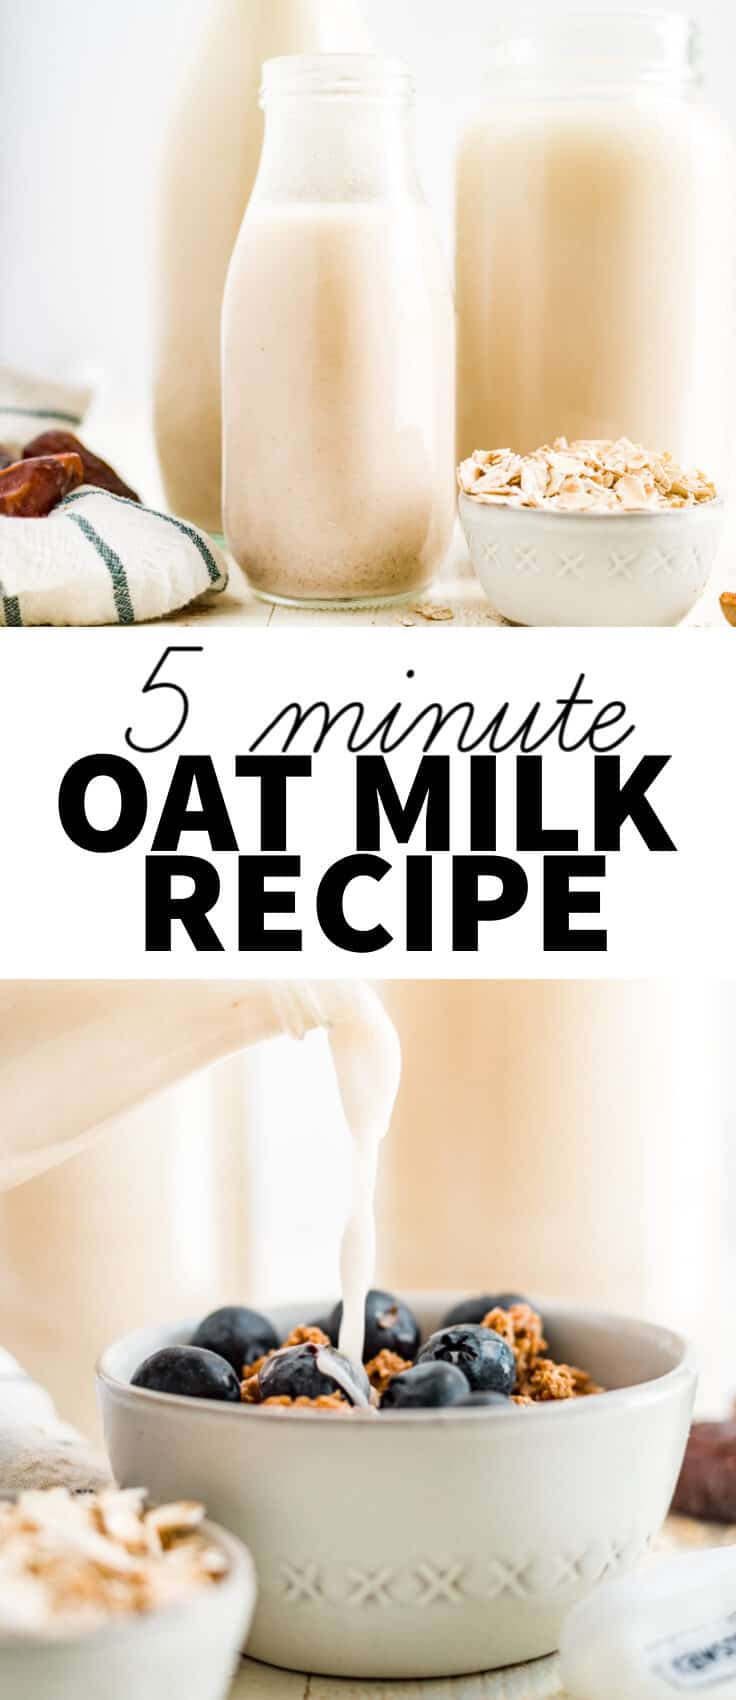 5 minute oat milk recipe with text overlay